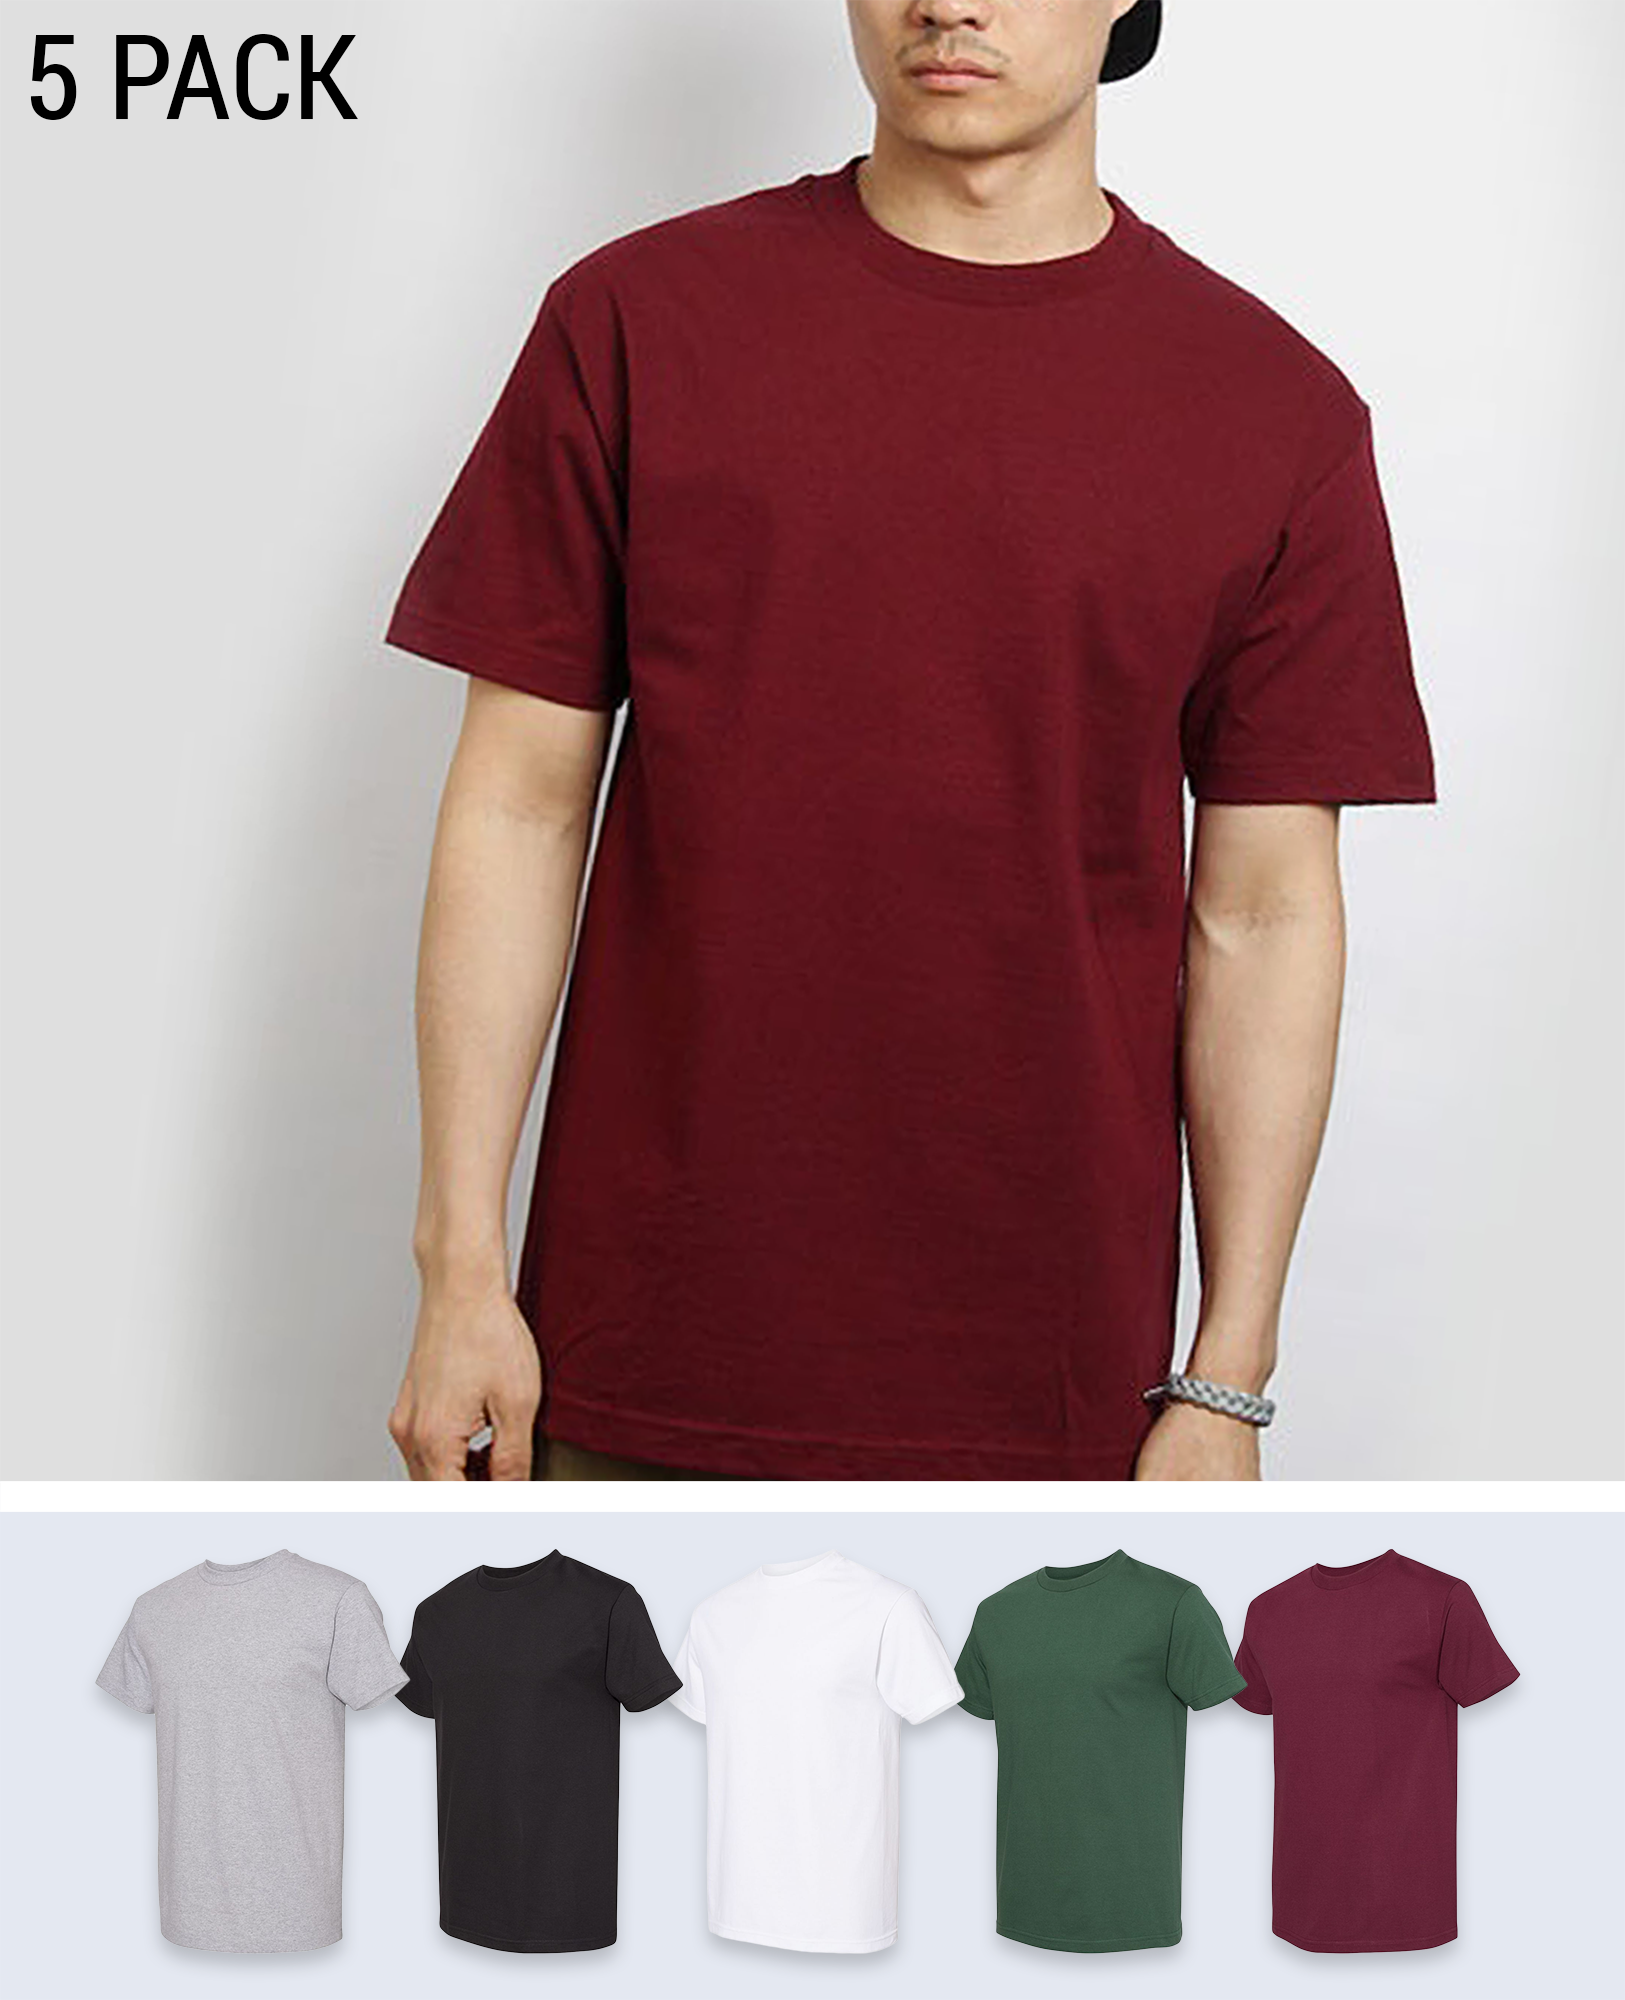 5 pack Cotton T-shirt - T-Shirts - Alstyle (AAA) - BRANMA